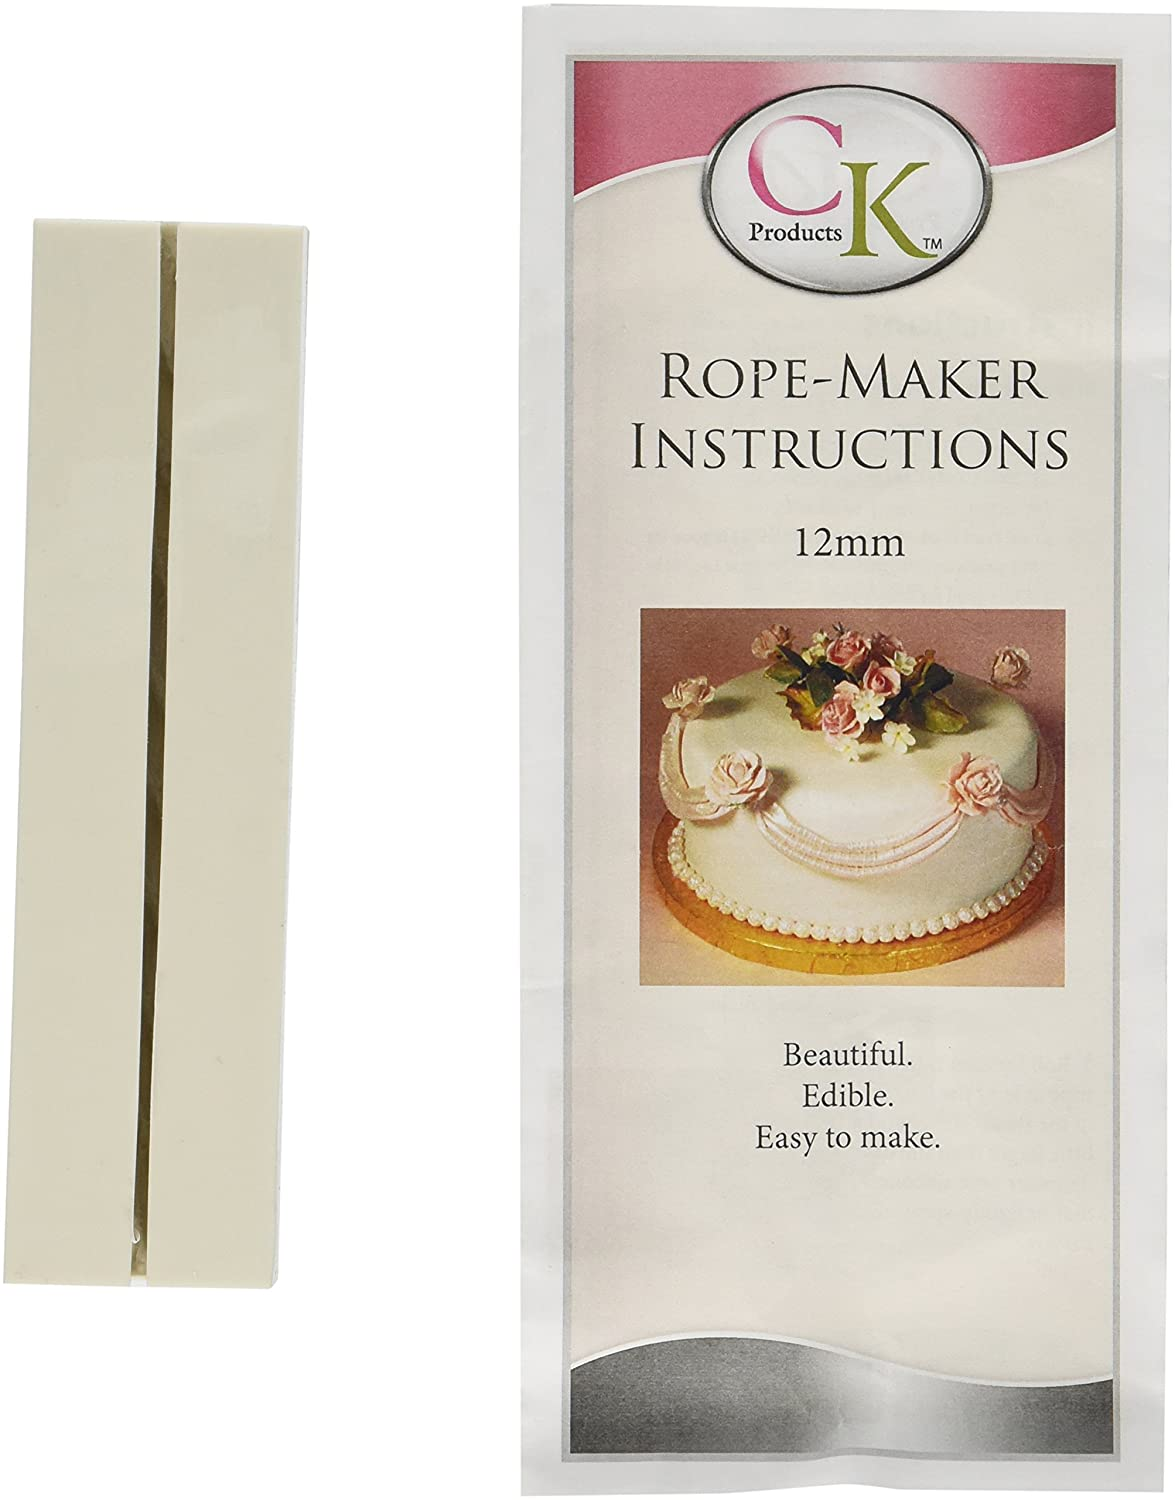 Rope 12mm Mold by CK by CK Products